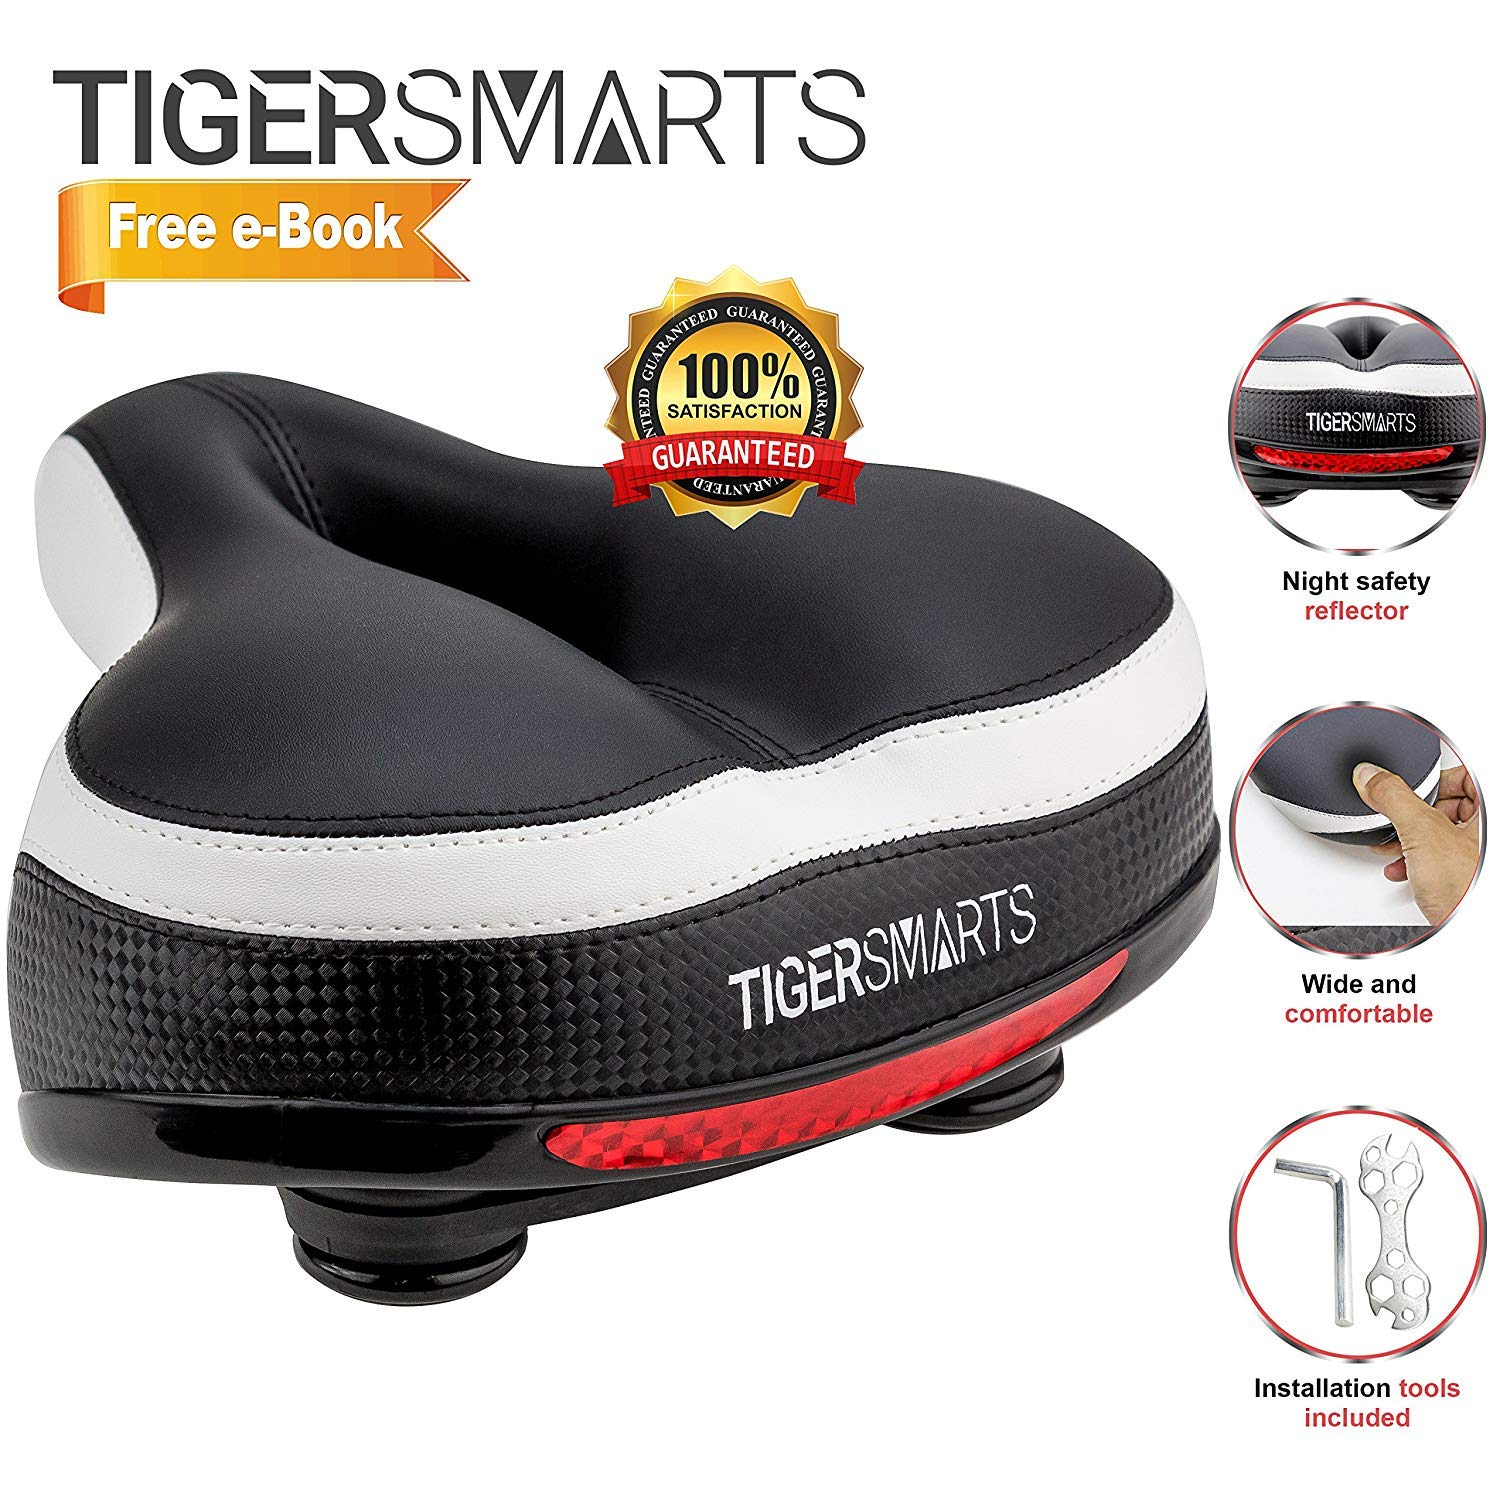 Bike Seat by TigerSmarts Replacement Padded Comfortable Bicycle Seat with Shock Absorbing Springs- Best Bike Saddle Cushion for Electric Bicycles,Mountain and Cruiser Bikes-Improves Riding Comfort by TigerSmarts (Image #3)